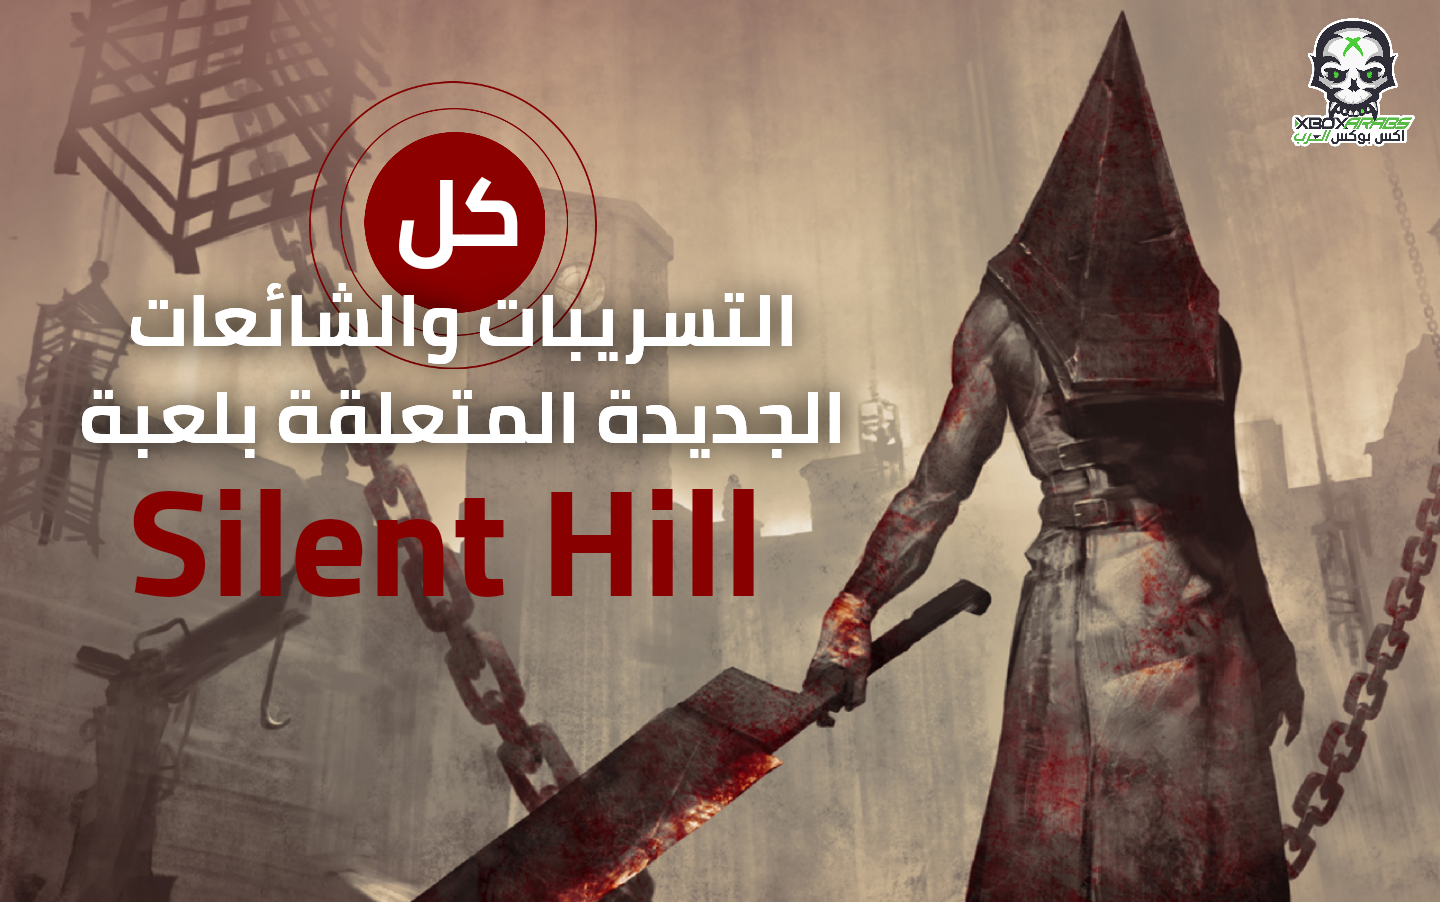 All rumors about Silent Hill